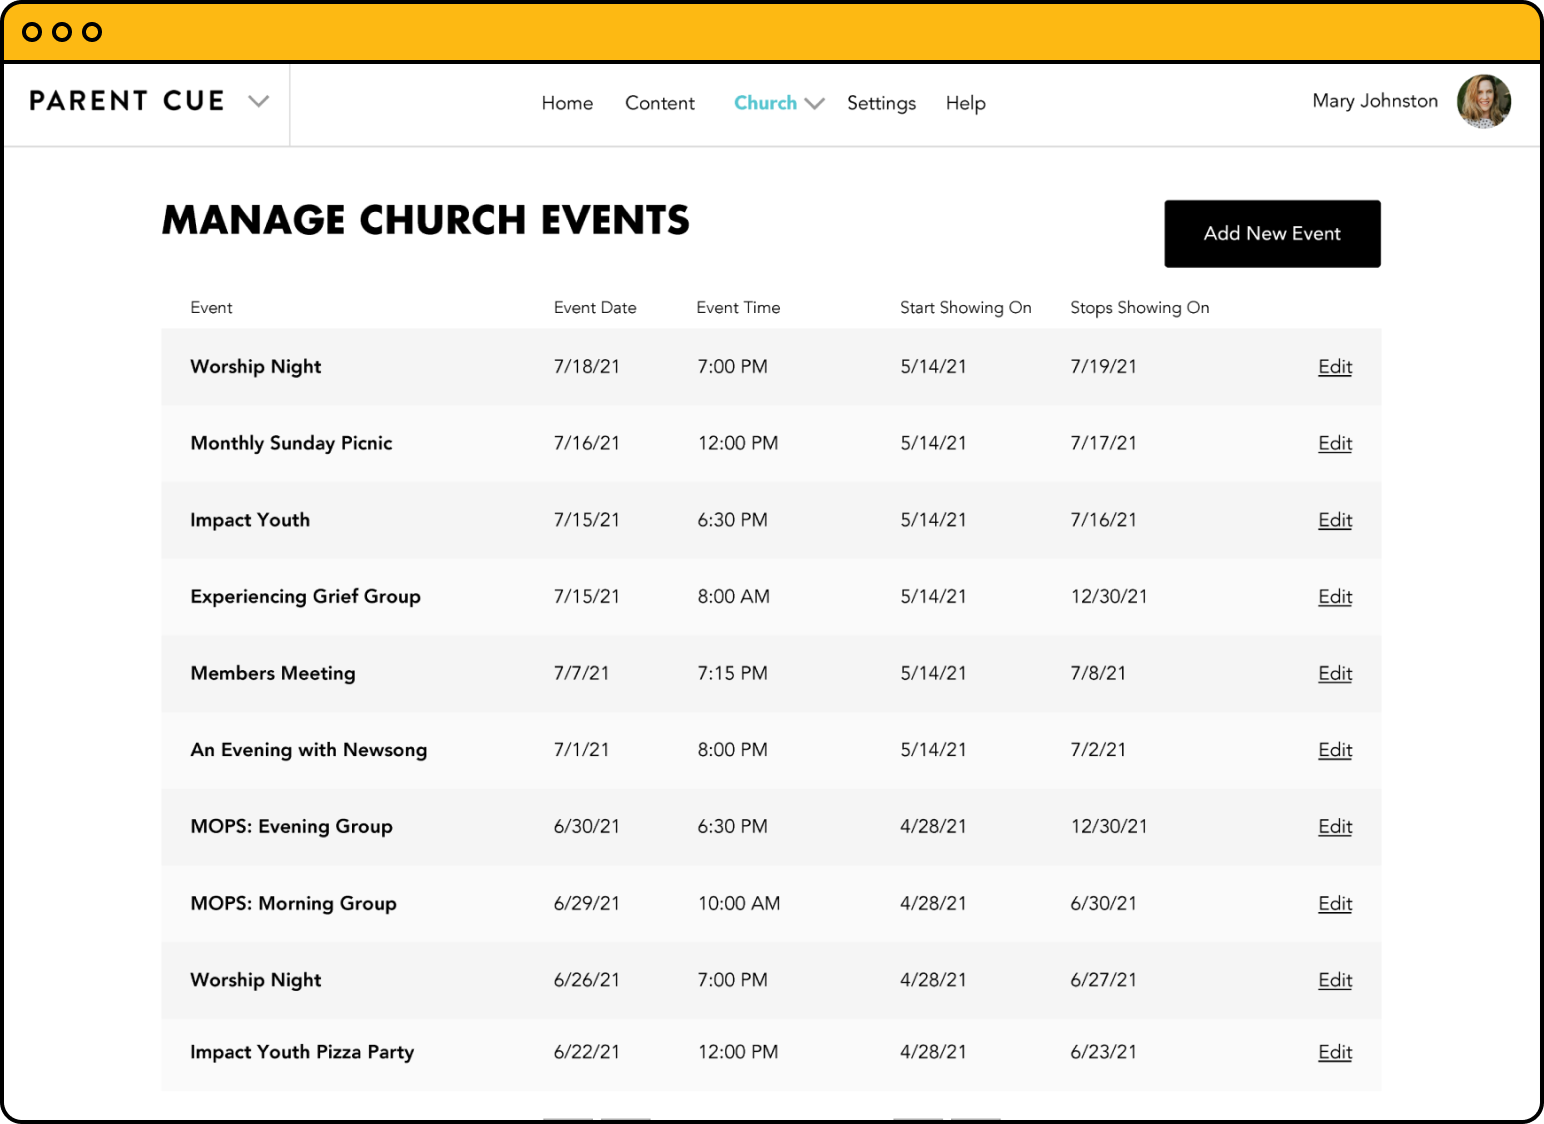 Announcements, registrations and push notifications all work seamlessly to centralize your most important ministry' communications in one place.